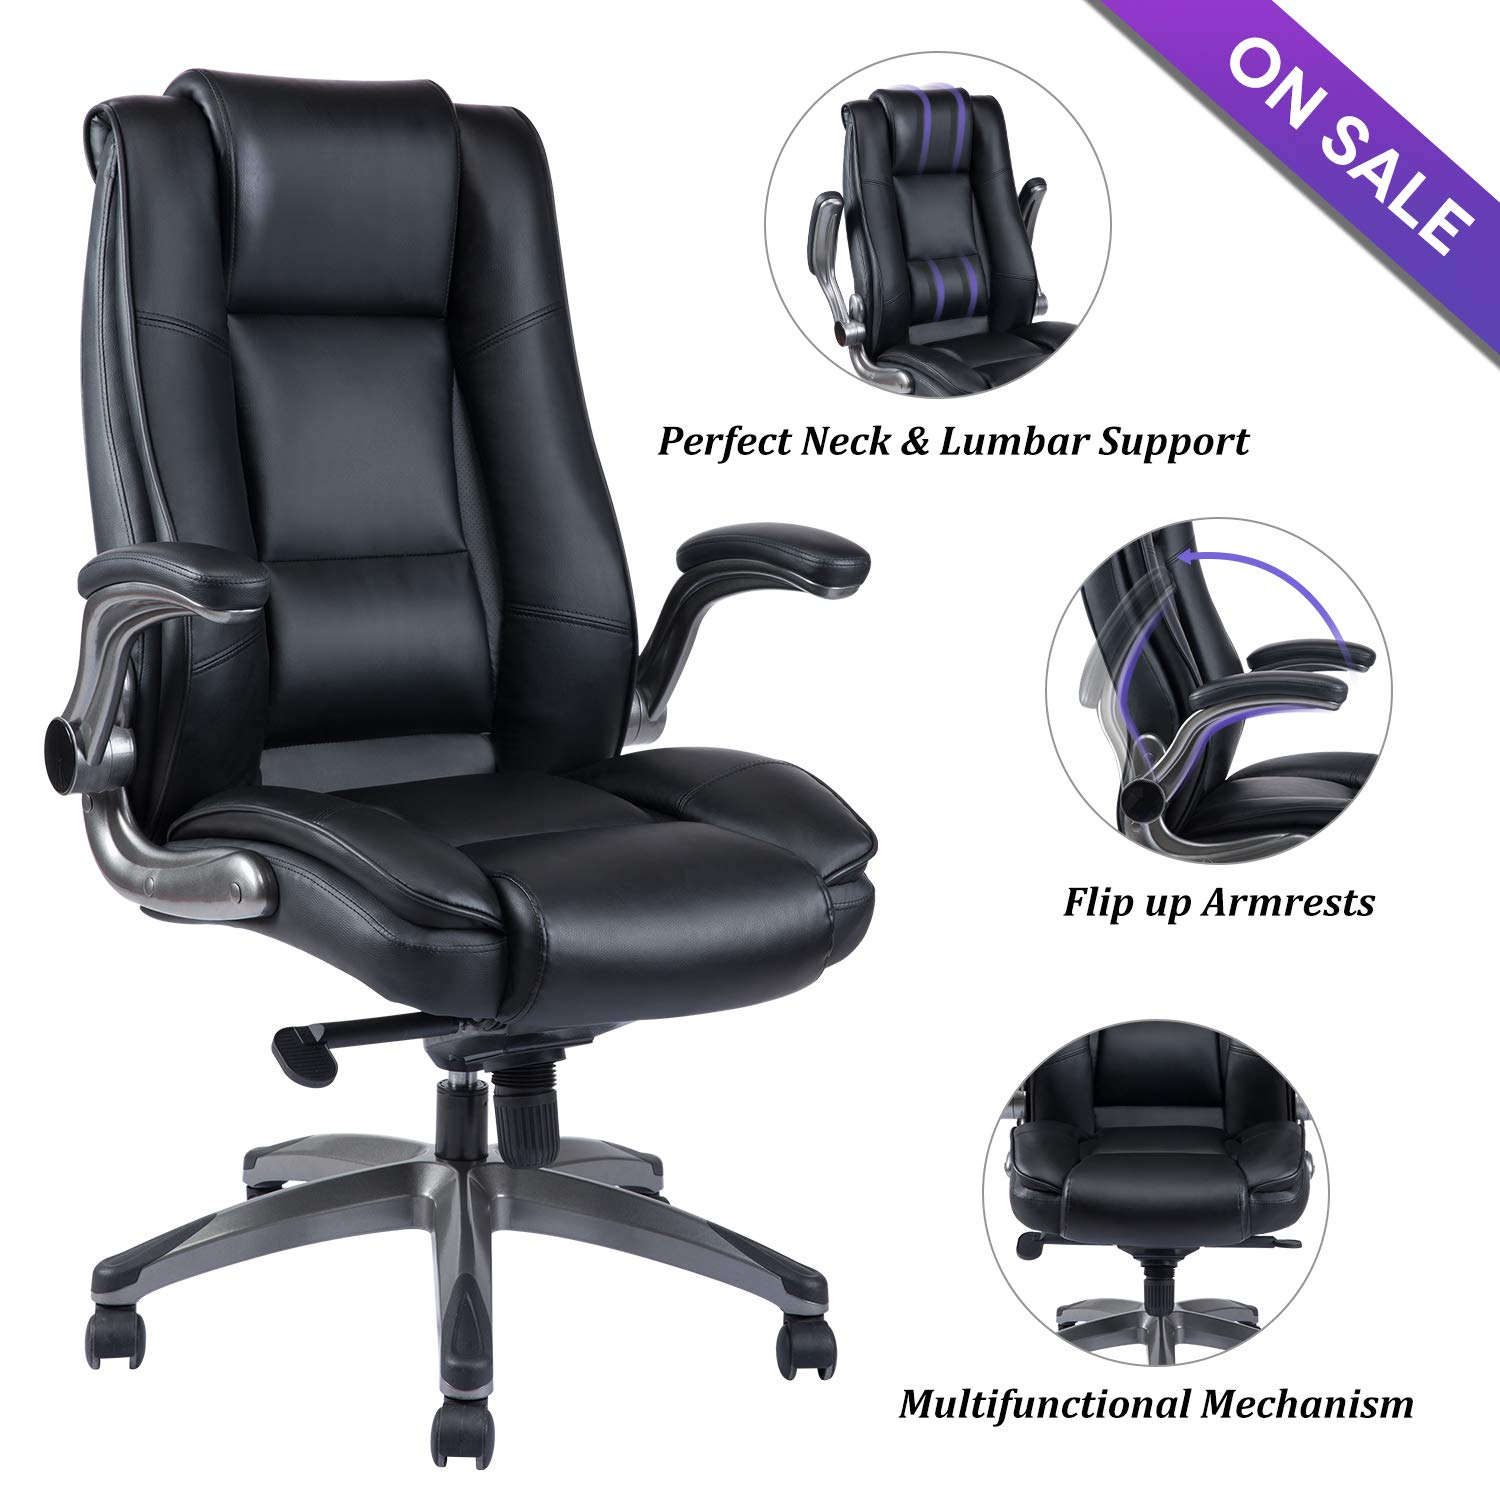 VANBOW High Back Leather Office Chair - Adjustable Tilt Angle and Flip-up Arms Executive Computer Desk Chair, Thick Padding for Comfort and Ergonomic Design for Lumbar Support, Black by VANBOW